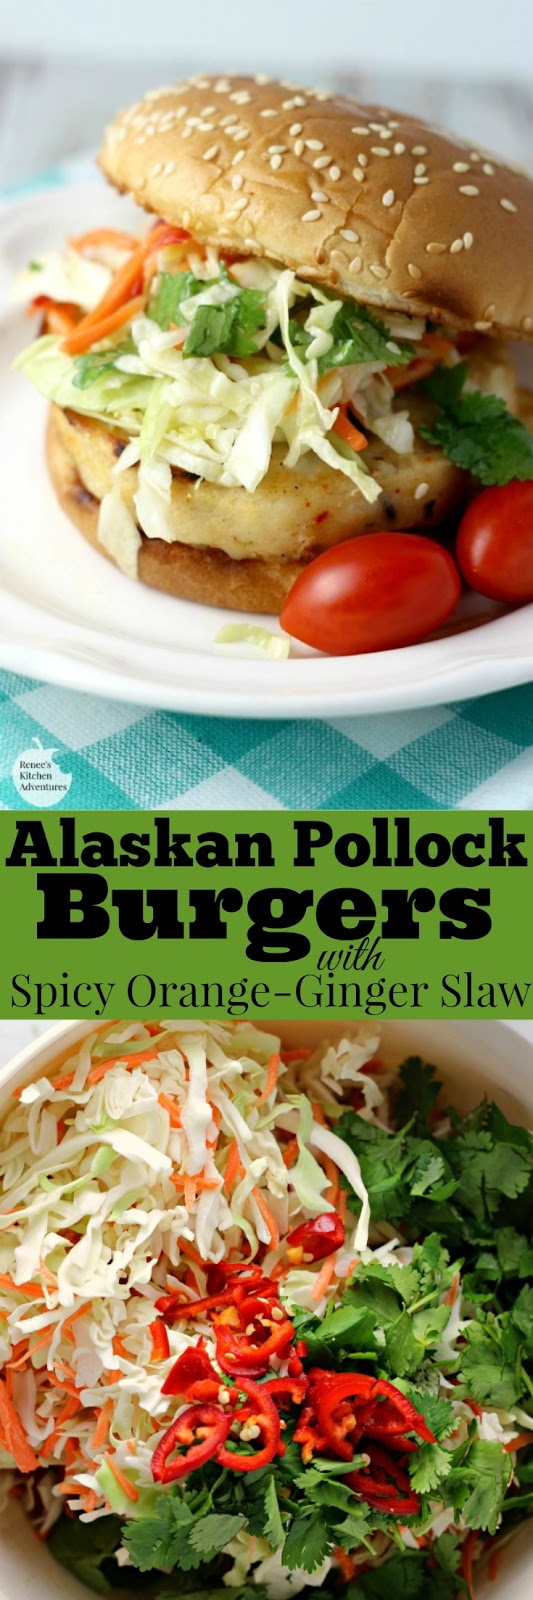 Alaskan Pollock Burgers with Spic Orange-Ginger Slaw | by Renee's Kitchen Adventures - easy dinner recipe featuring Alaskan Pollock Burgers topped with a sweet and spicy orange-ginger slaw  #Swapyourburger #ad